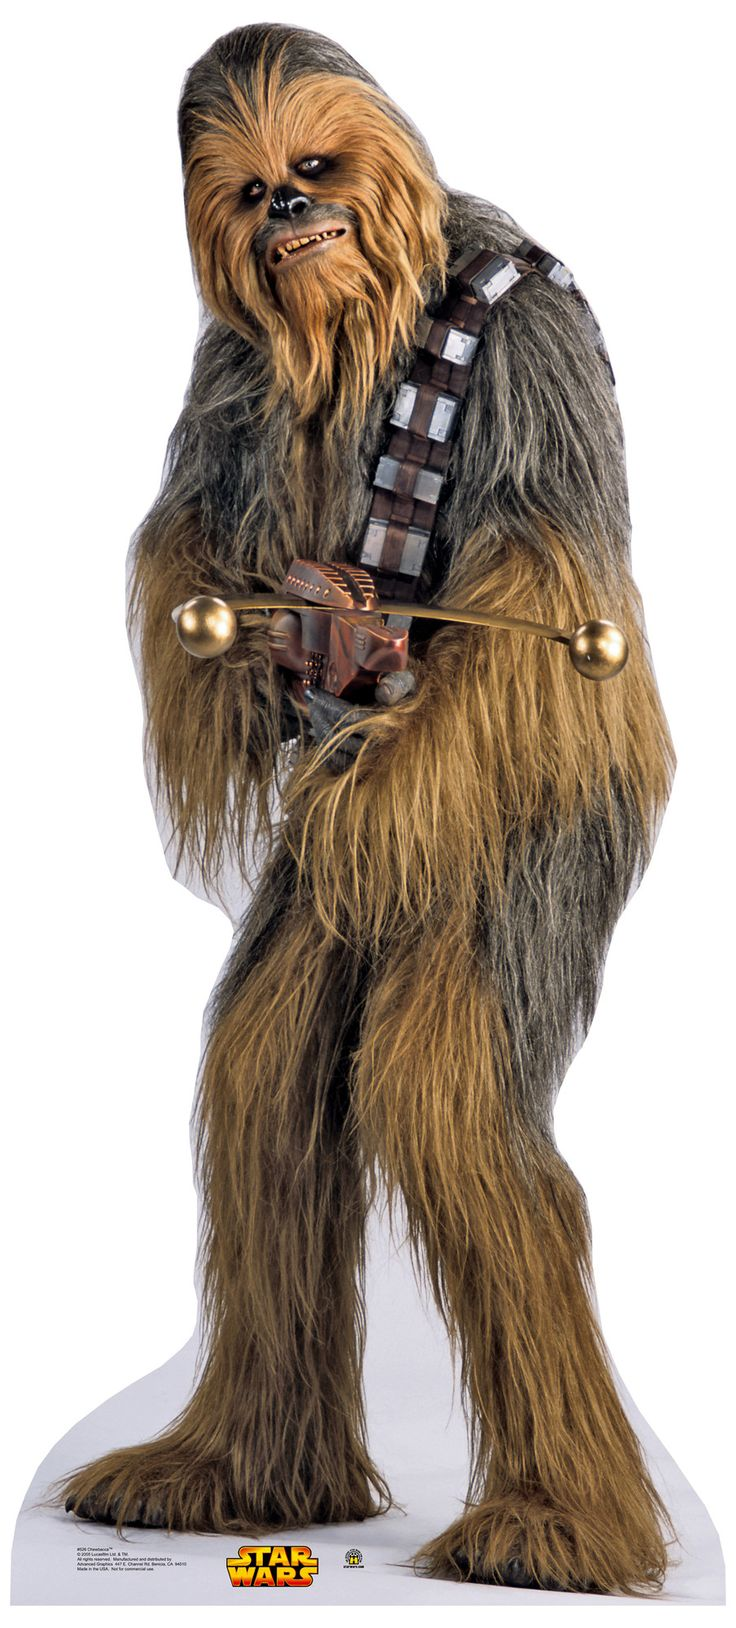 Advanced Graphics Star Wars Chewbacca Life Size Cardboard Stand Up & Reviews | Wayfair